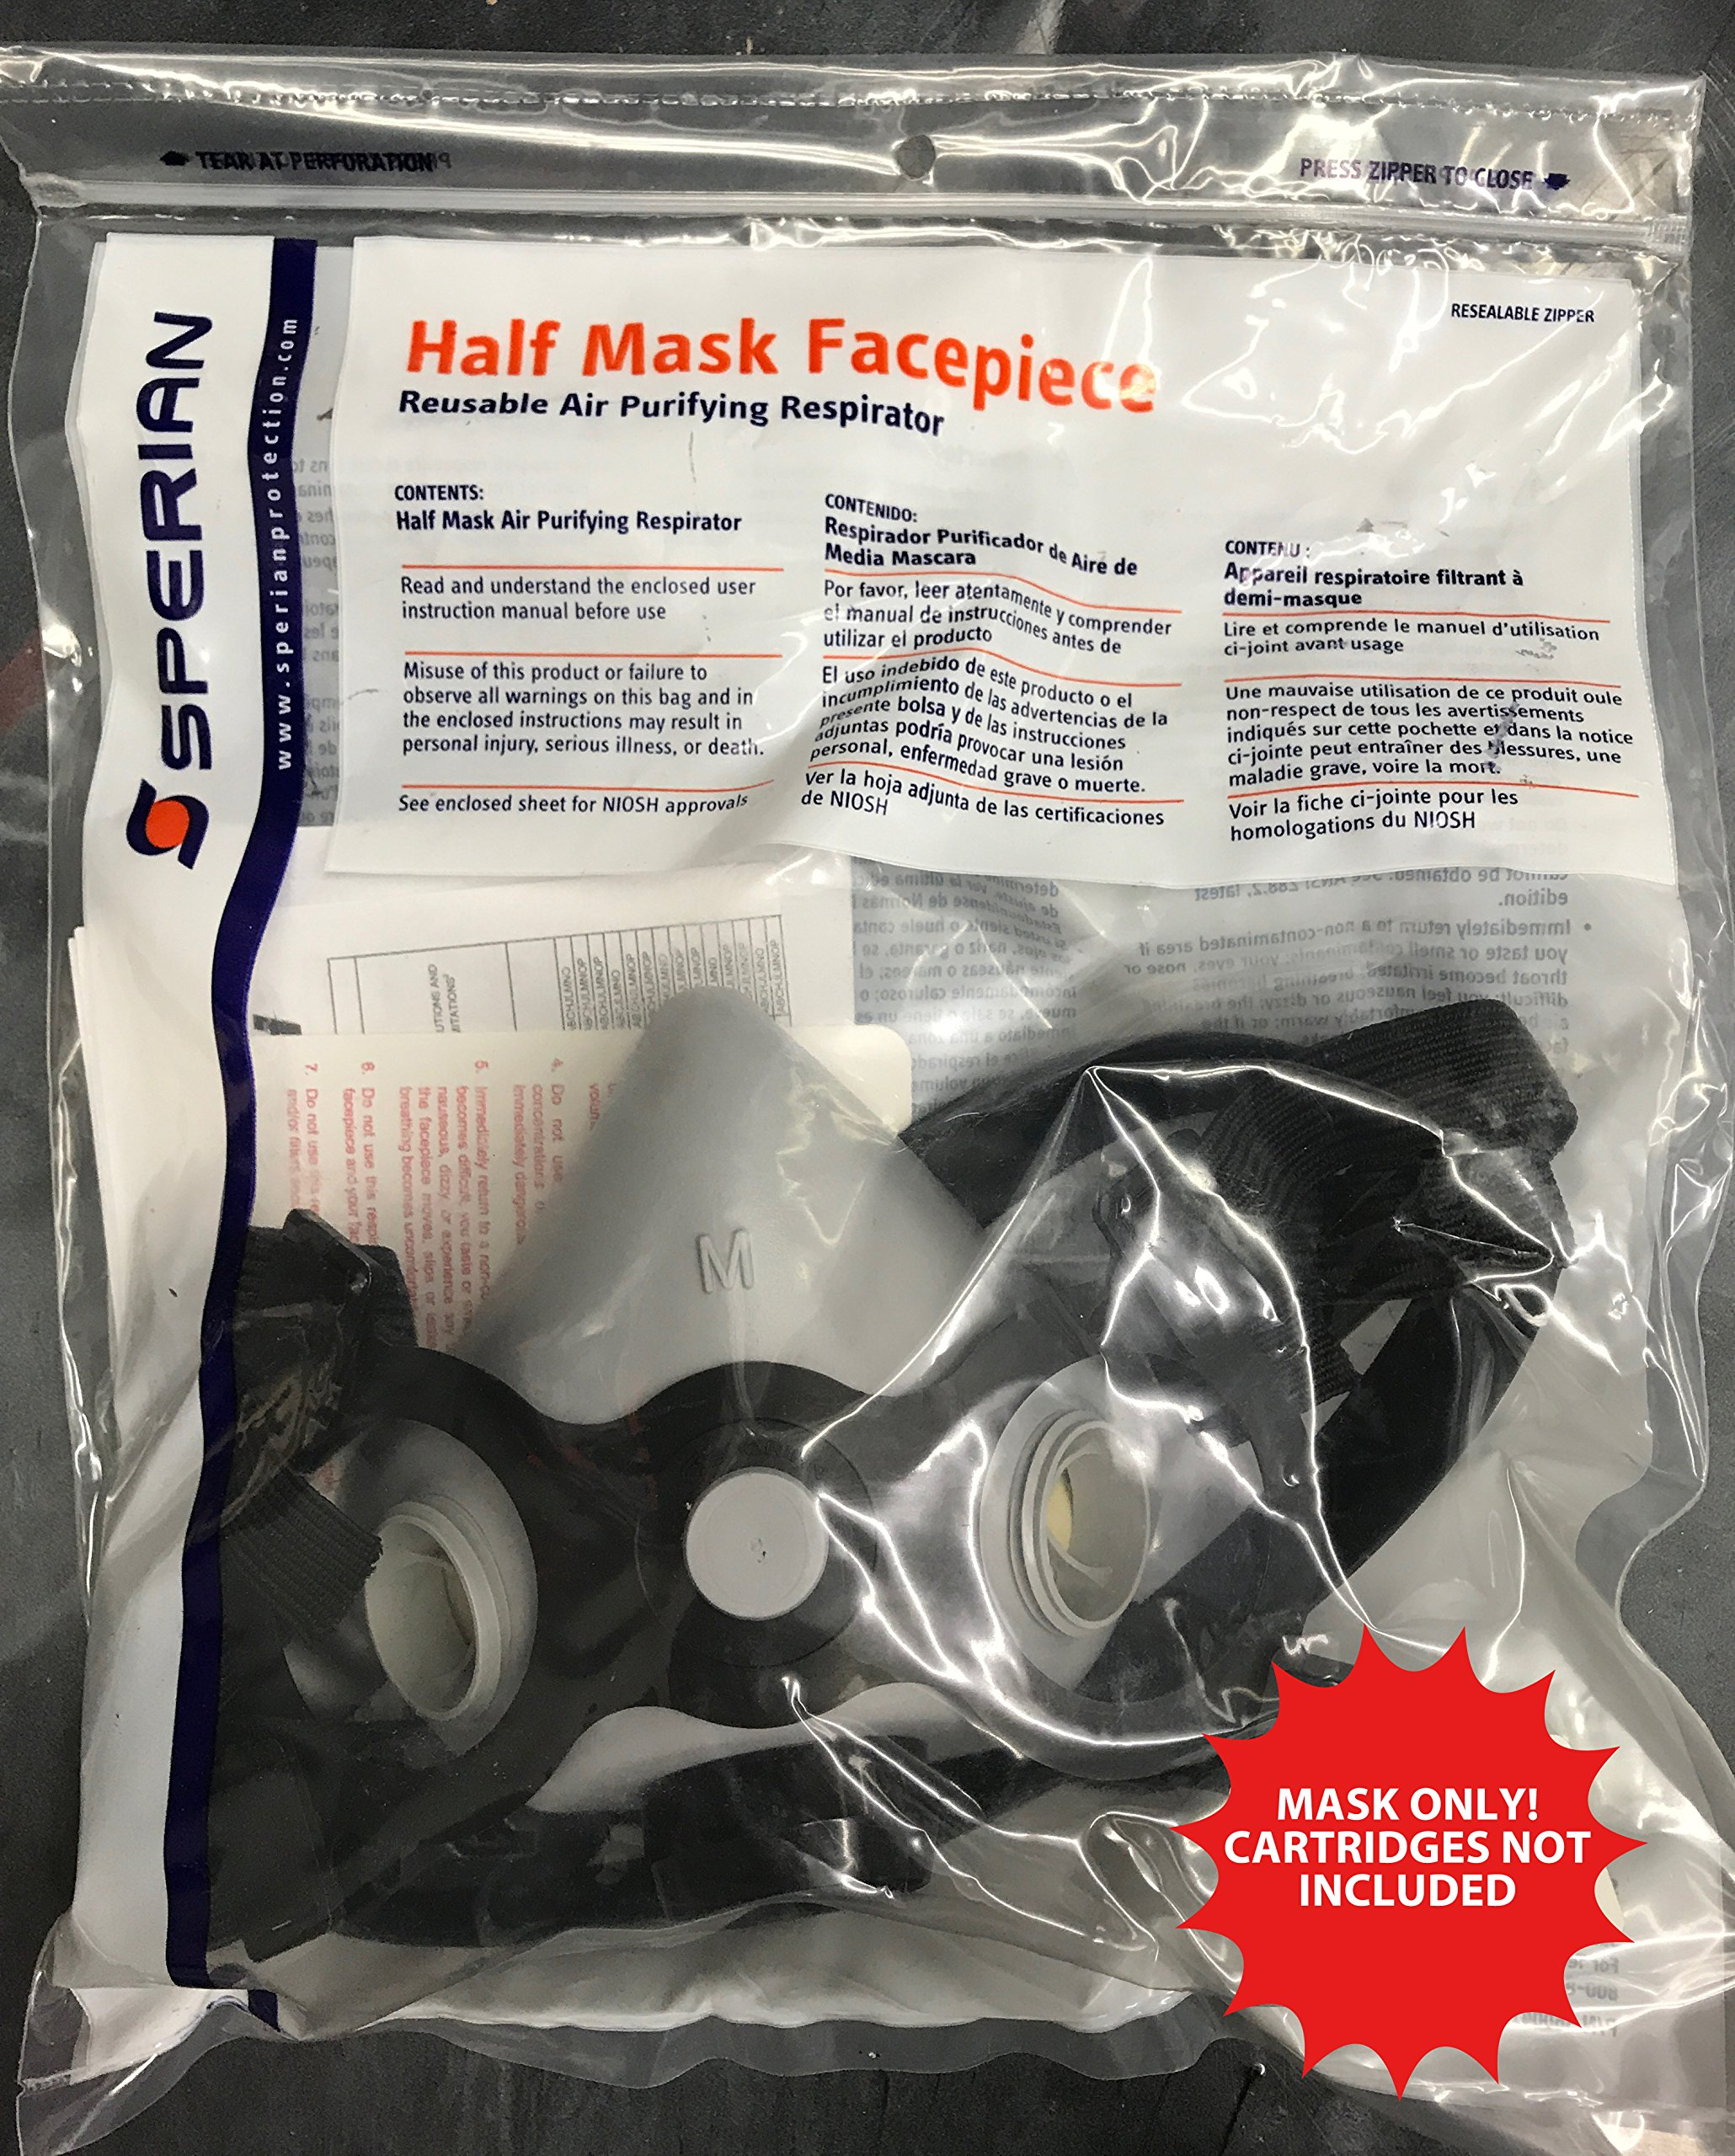 Half Mask Respirator - Reusable Air Purifying Mask (Medium)